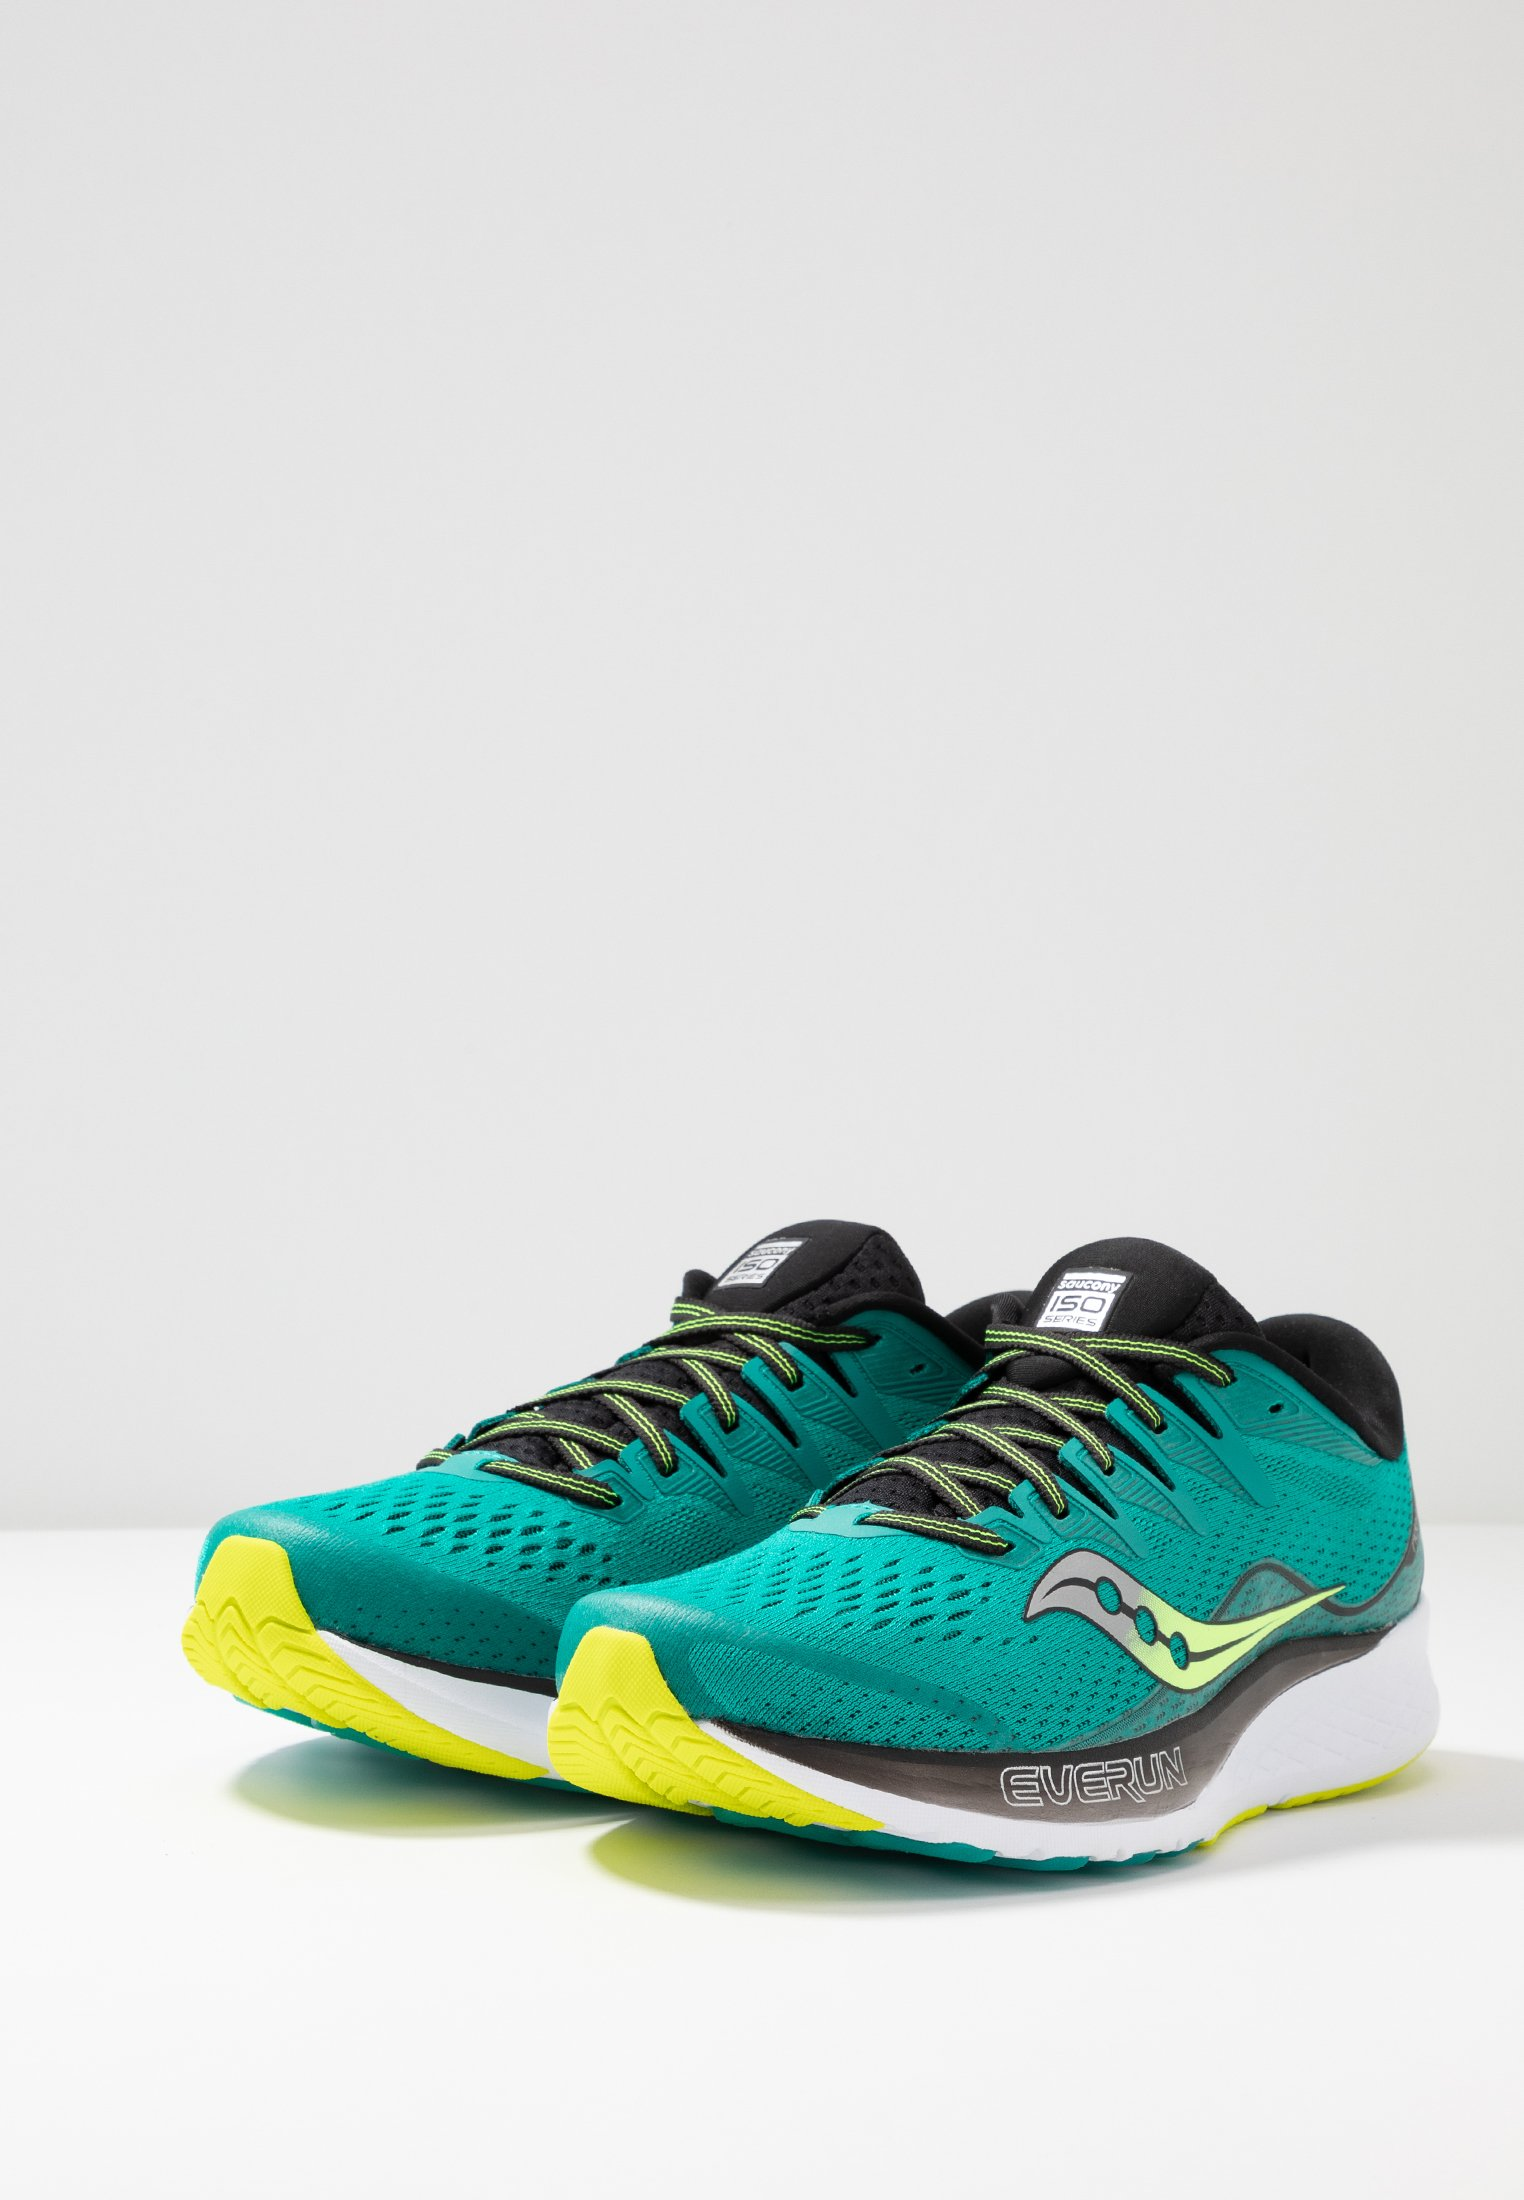 2Chaussures Neutres black Saucony Teal Running Iso Ride De TJFc1Kl